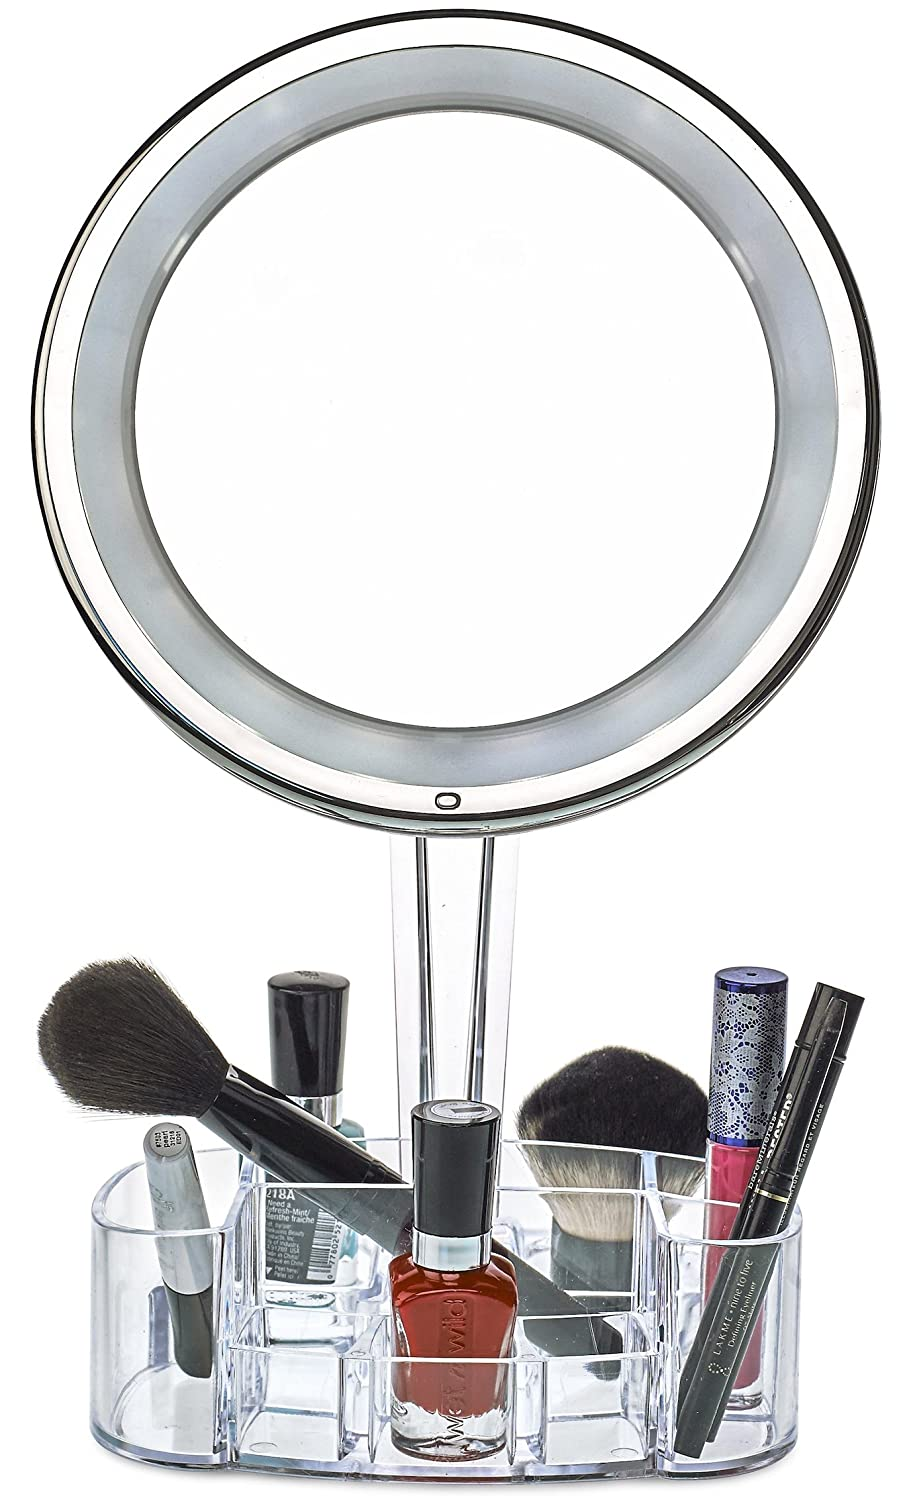 mirror on a stand vanity. Amazon com  daisi Magnifying Lighted Makeup Mirror with Cosmetic Organizer Base 7X Magnification LED Free Standing Bathroom for Vanity